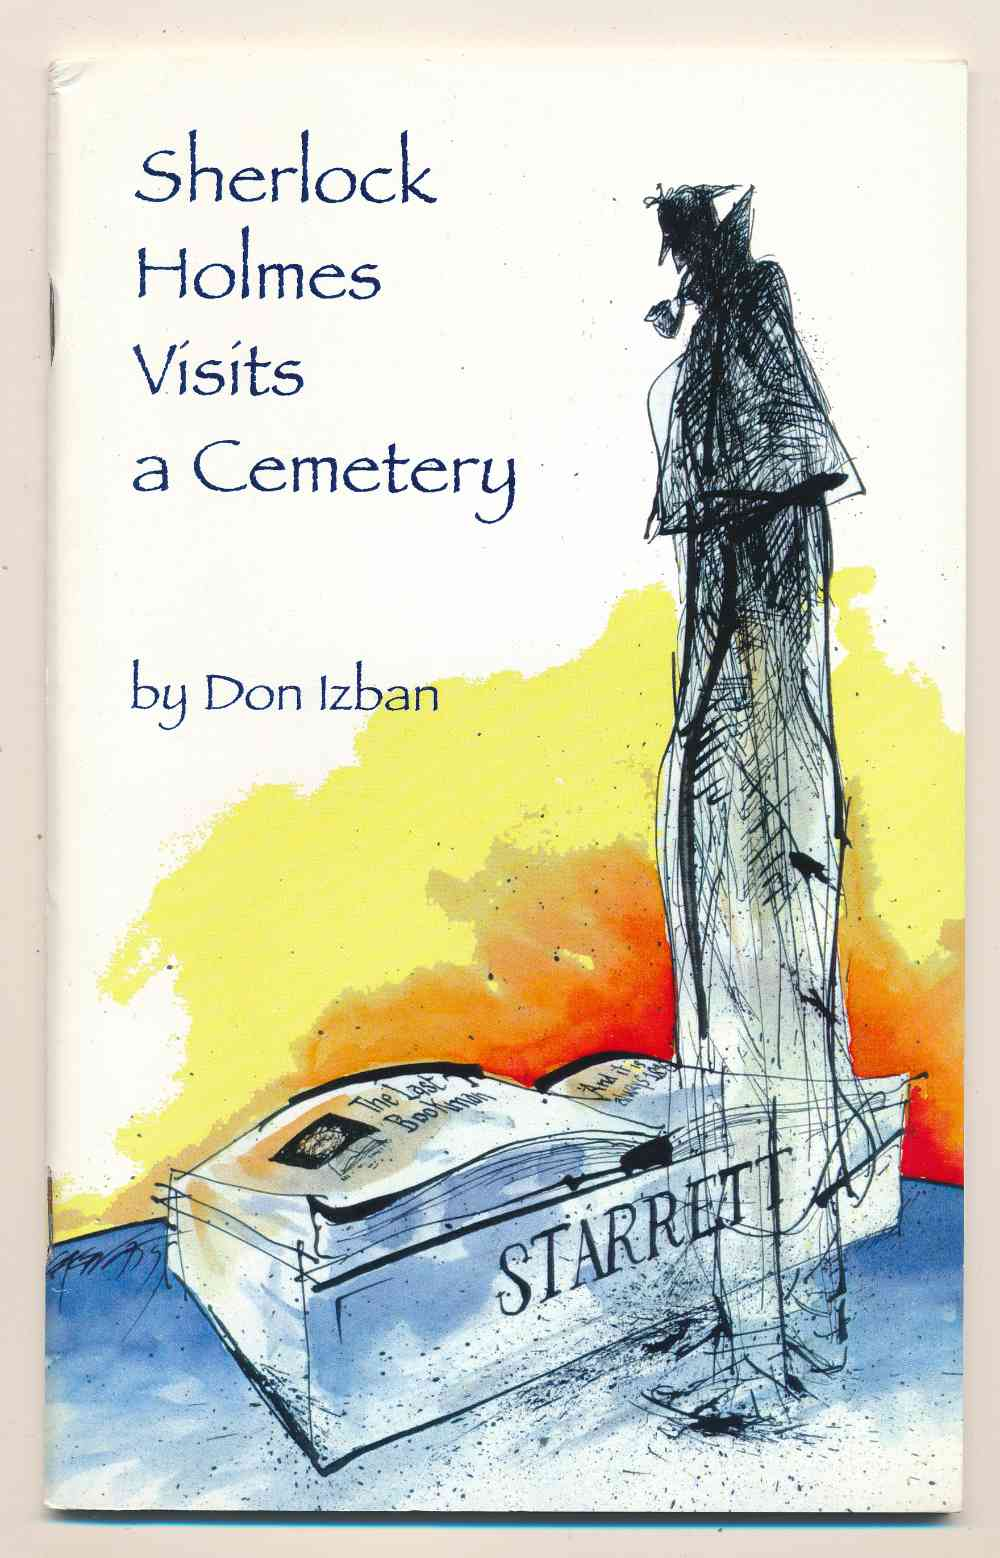 Sherlock Holmes visits a cemetery